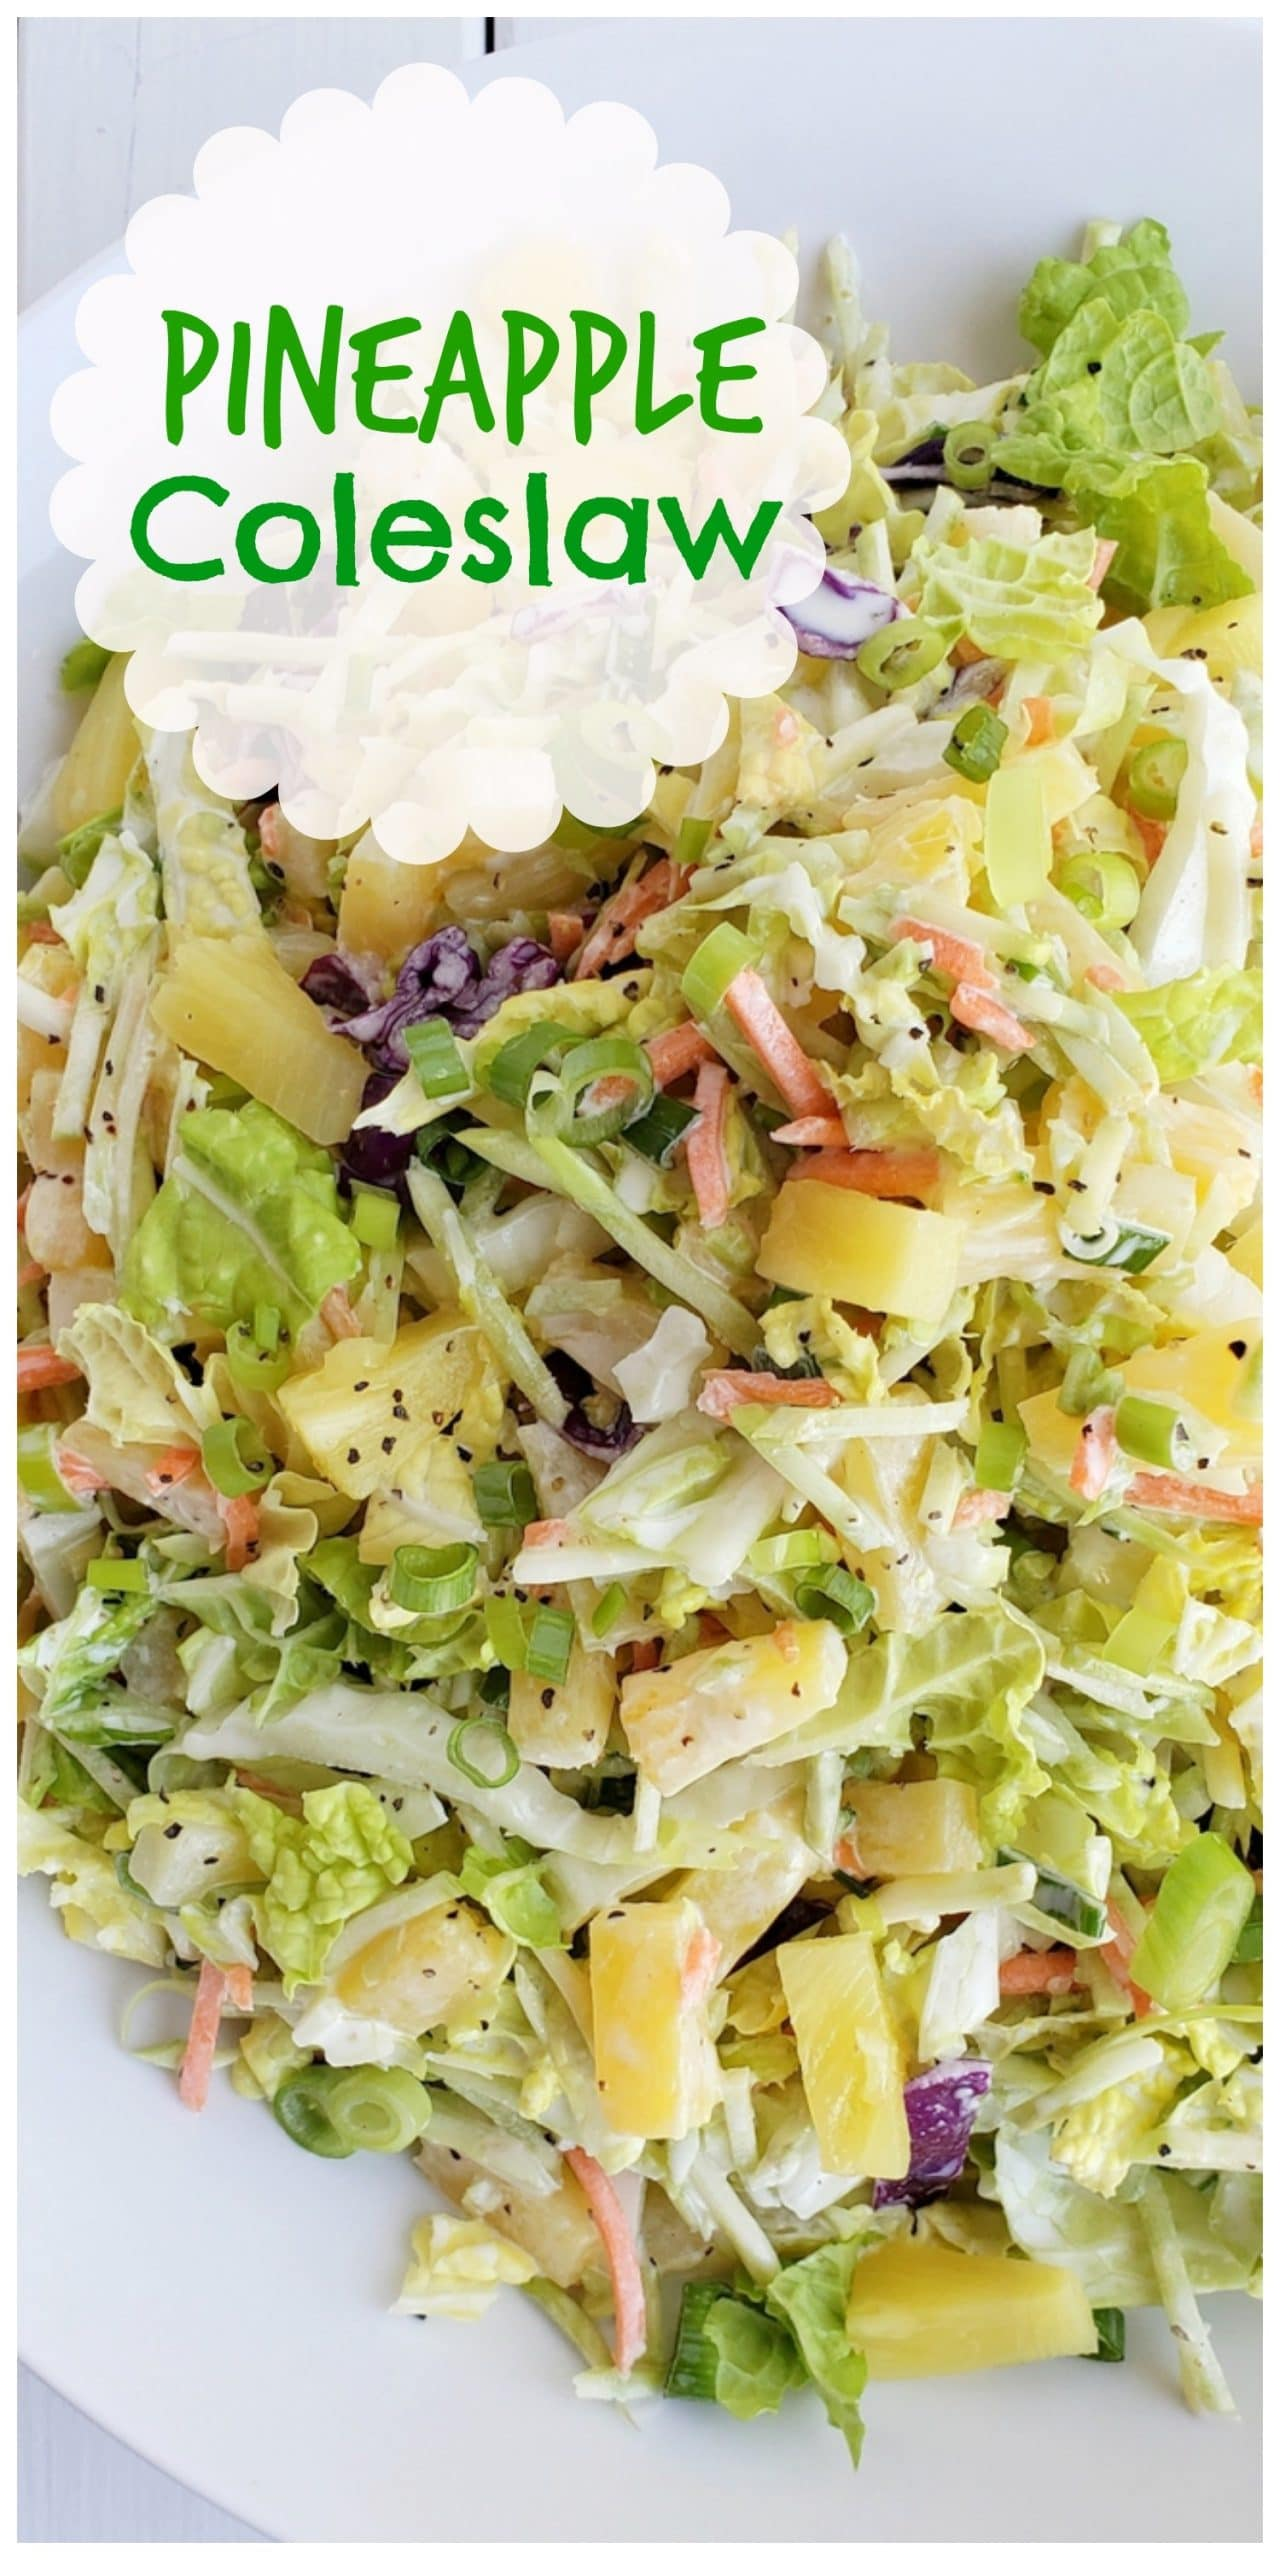 This Easy Pineapple Coleslaw is going to remind you of summer all year long. Enjoy as a side dish or top your favorite chicken burger with this one. #noblepig #coleslaw #pineapple #sidedish via @cmpollak1